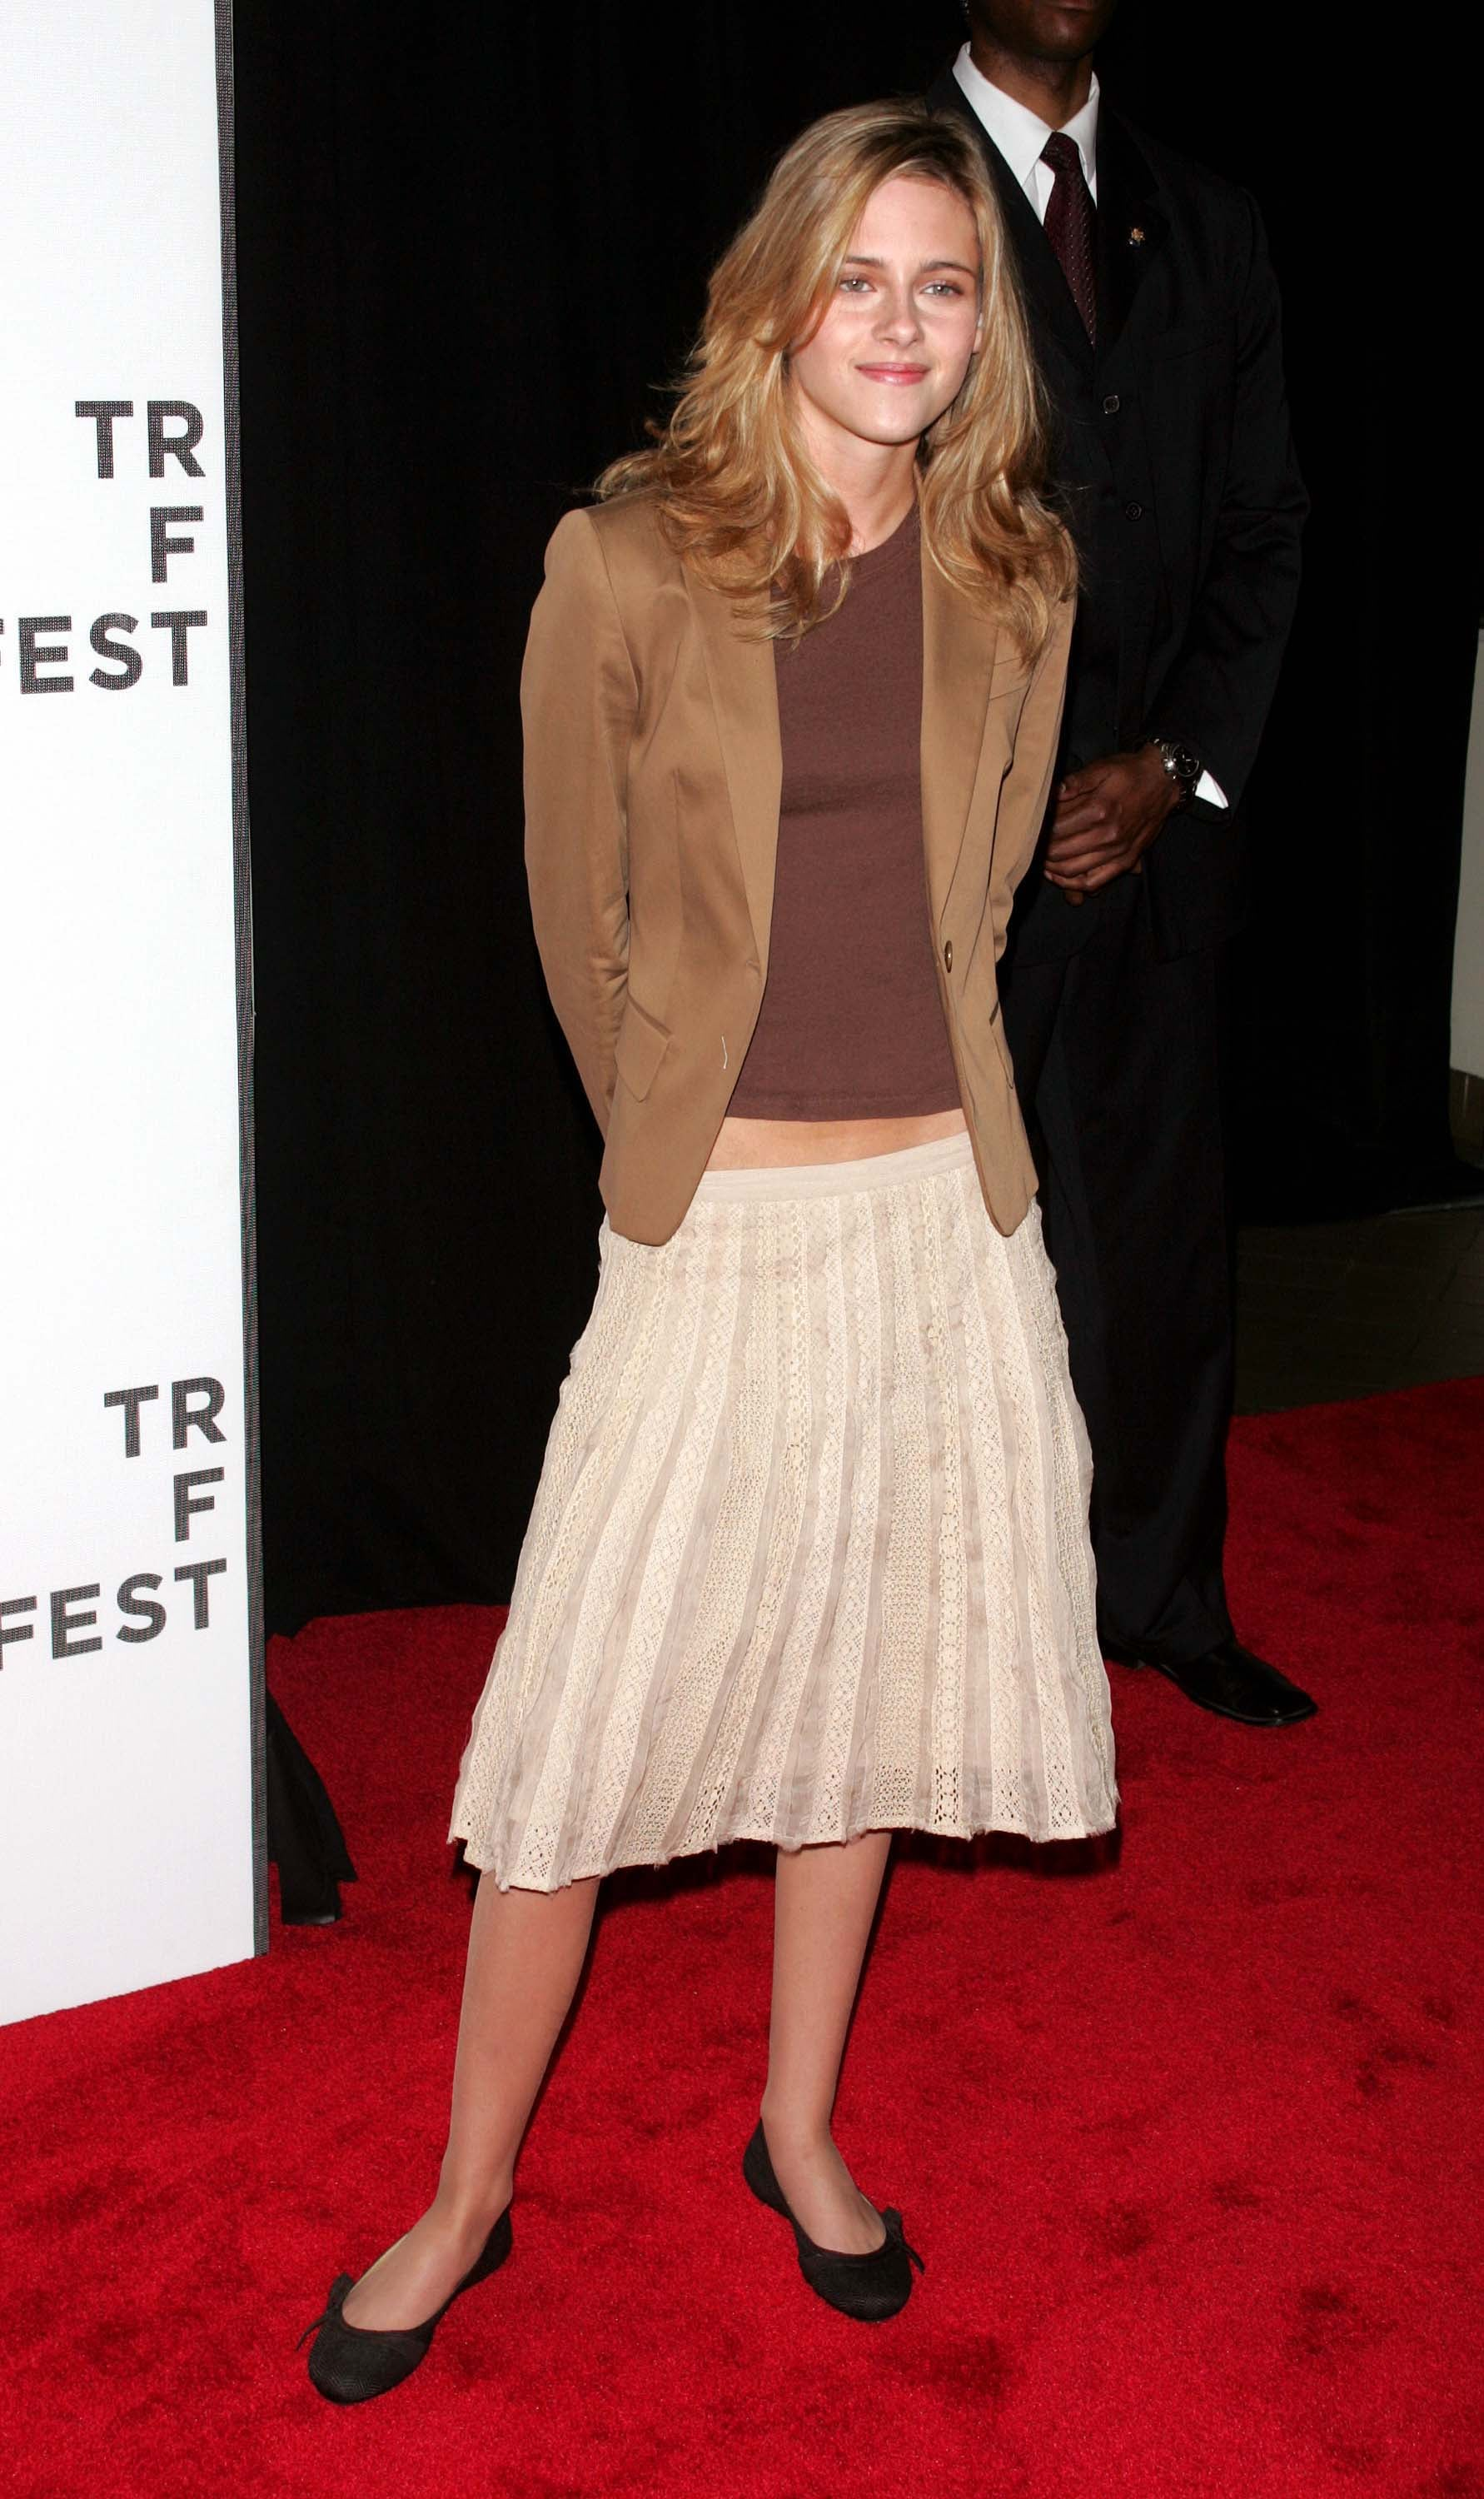 Kristen Stewart looked sophisticated at the Tribeca Film Festival Fierce People premiere in NYC in April 2005.